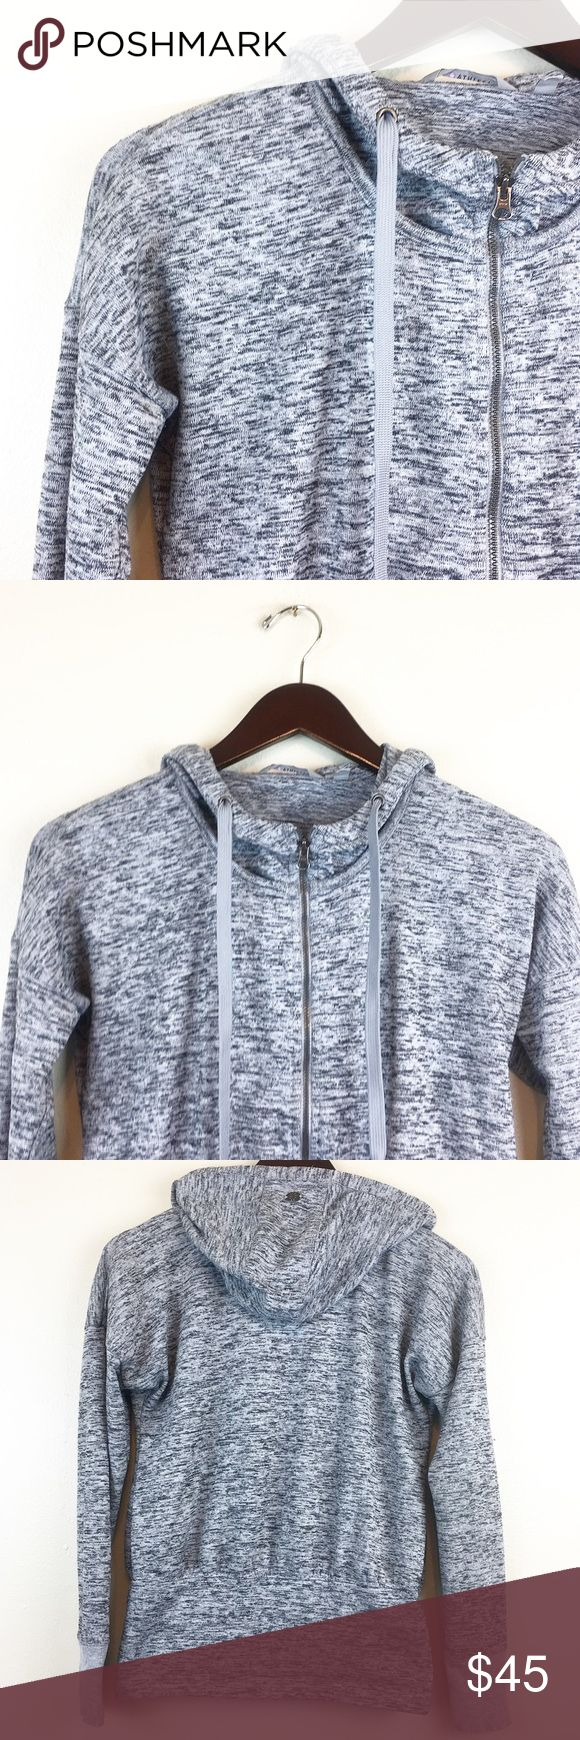 """Athleta Batwing And Robin Zip Up Gray Hoodie XXS Athleta Batwing and Robin Zip Up Hoodie Size: XXS Color: Gray/White   Measurements:  Bust - armpit to armpit laying flat: 18""""  Sleeve Length - 18.5"""" Length - taken from back of garment, top to bottom: 22.5""""  Great Pre Used Condition! HAPPY POSHING! Athleta Tops Sweatshirts & Hoodies"""